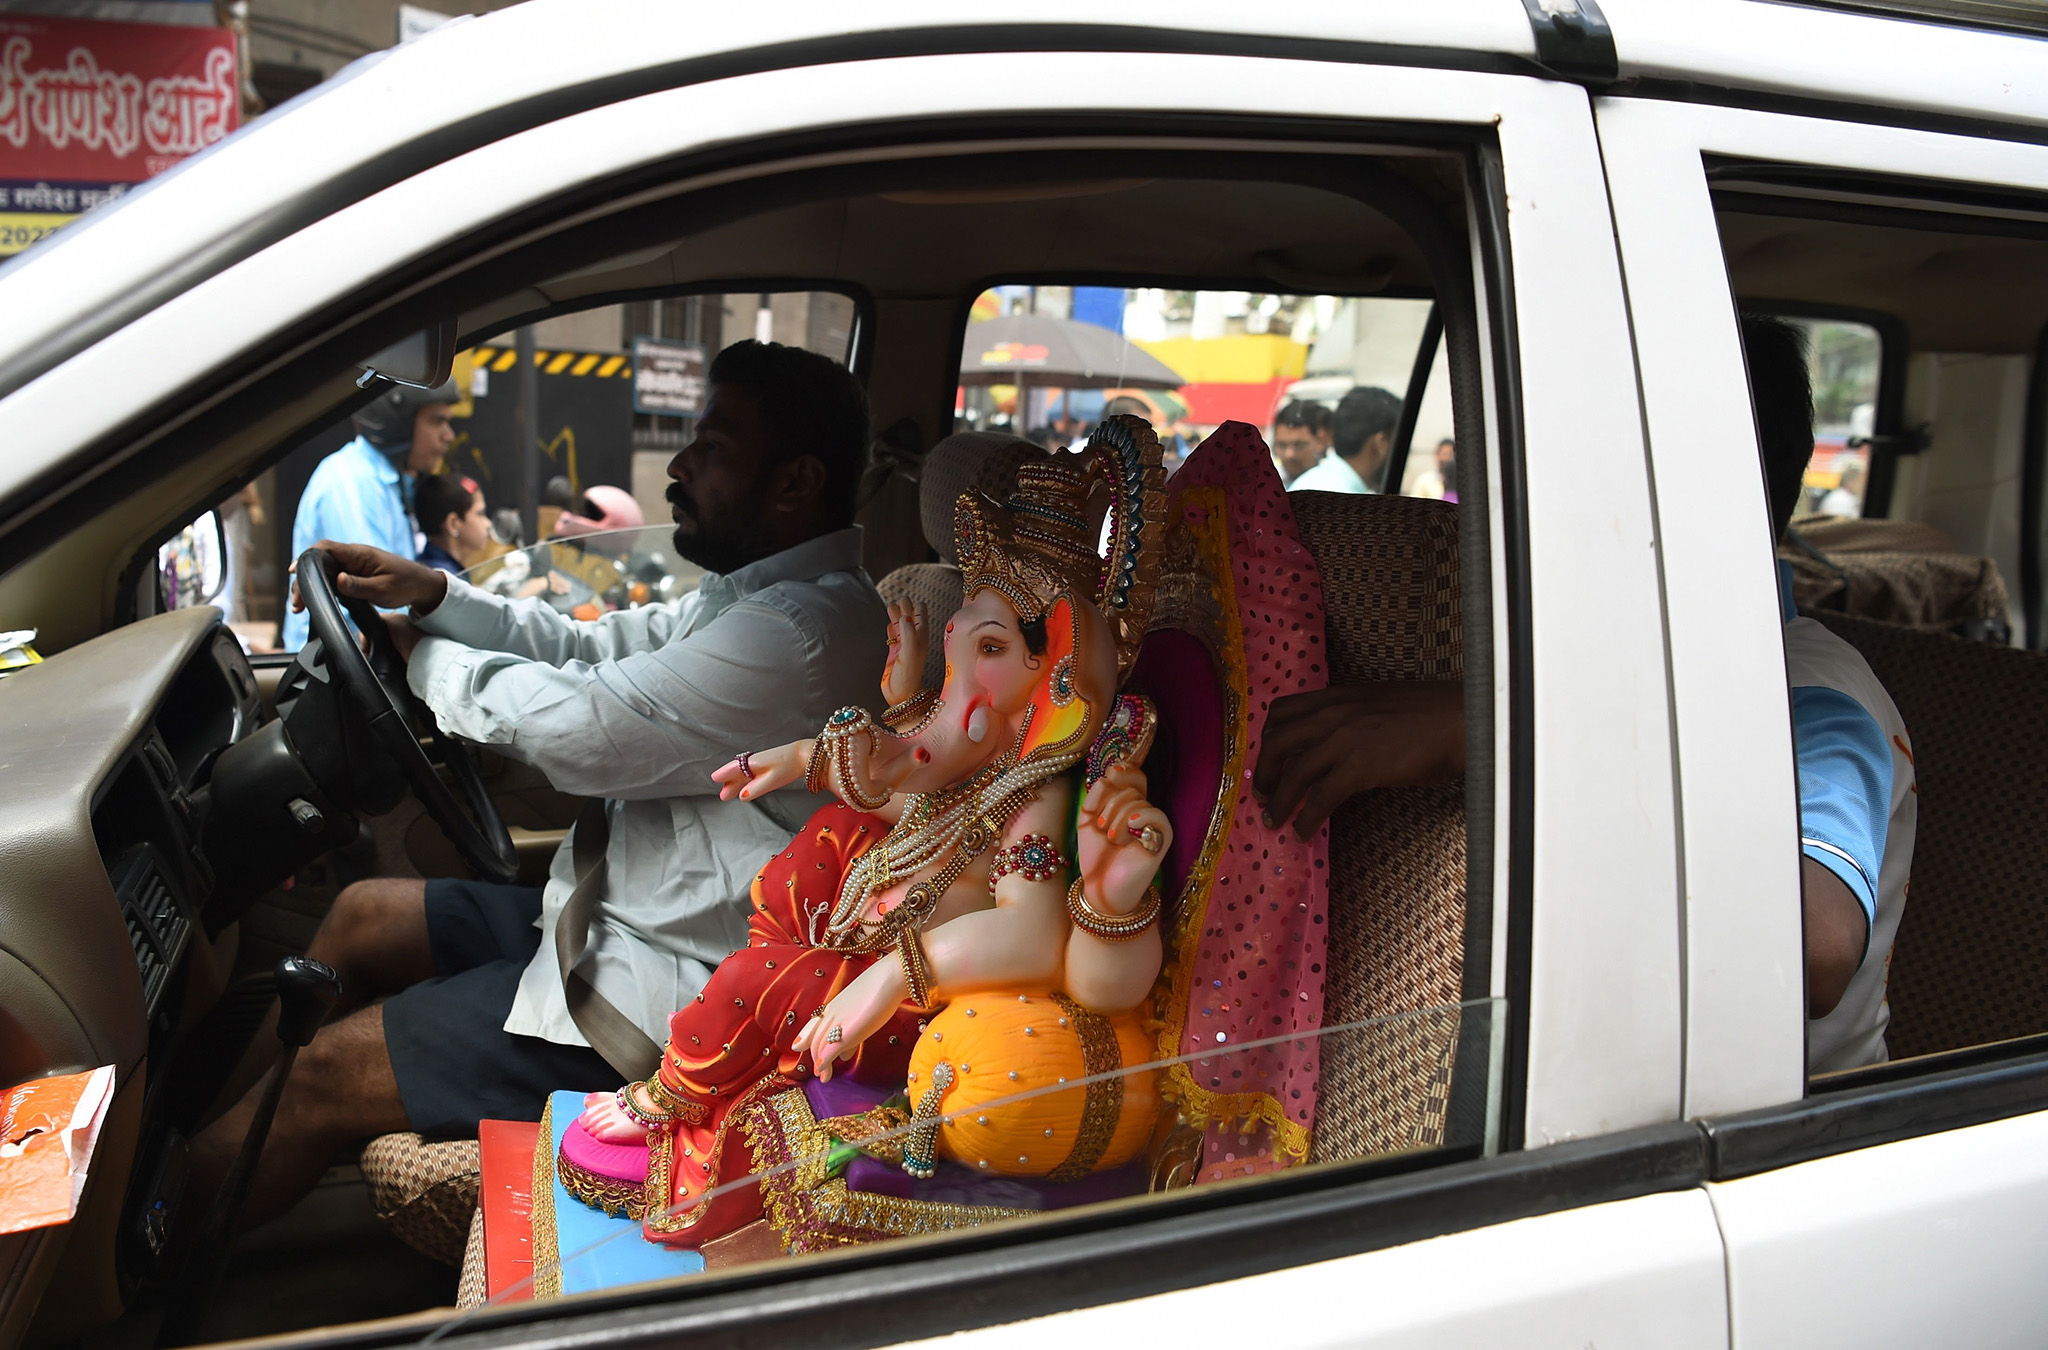 An Indian Hindu devotee transports an idol of the elephant-headed Hindu god, Lord Ganesha in his car, for Ganesh Chaturthi in Mumbai on September 5, 2015.  The Ganesh Chaturthi festival, a popular 11-day religious festival which is annually celebrated across India, runs this year from September 5-15, and culminates with the im